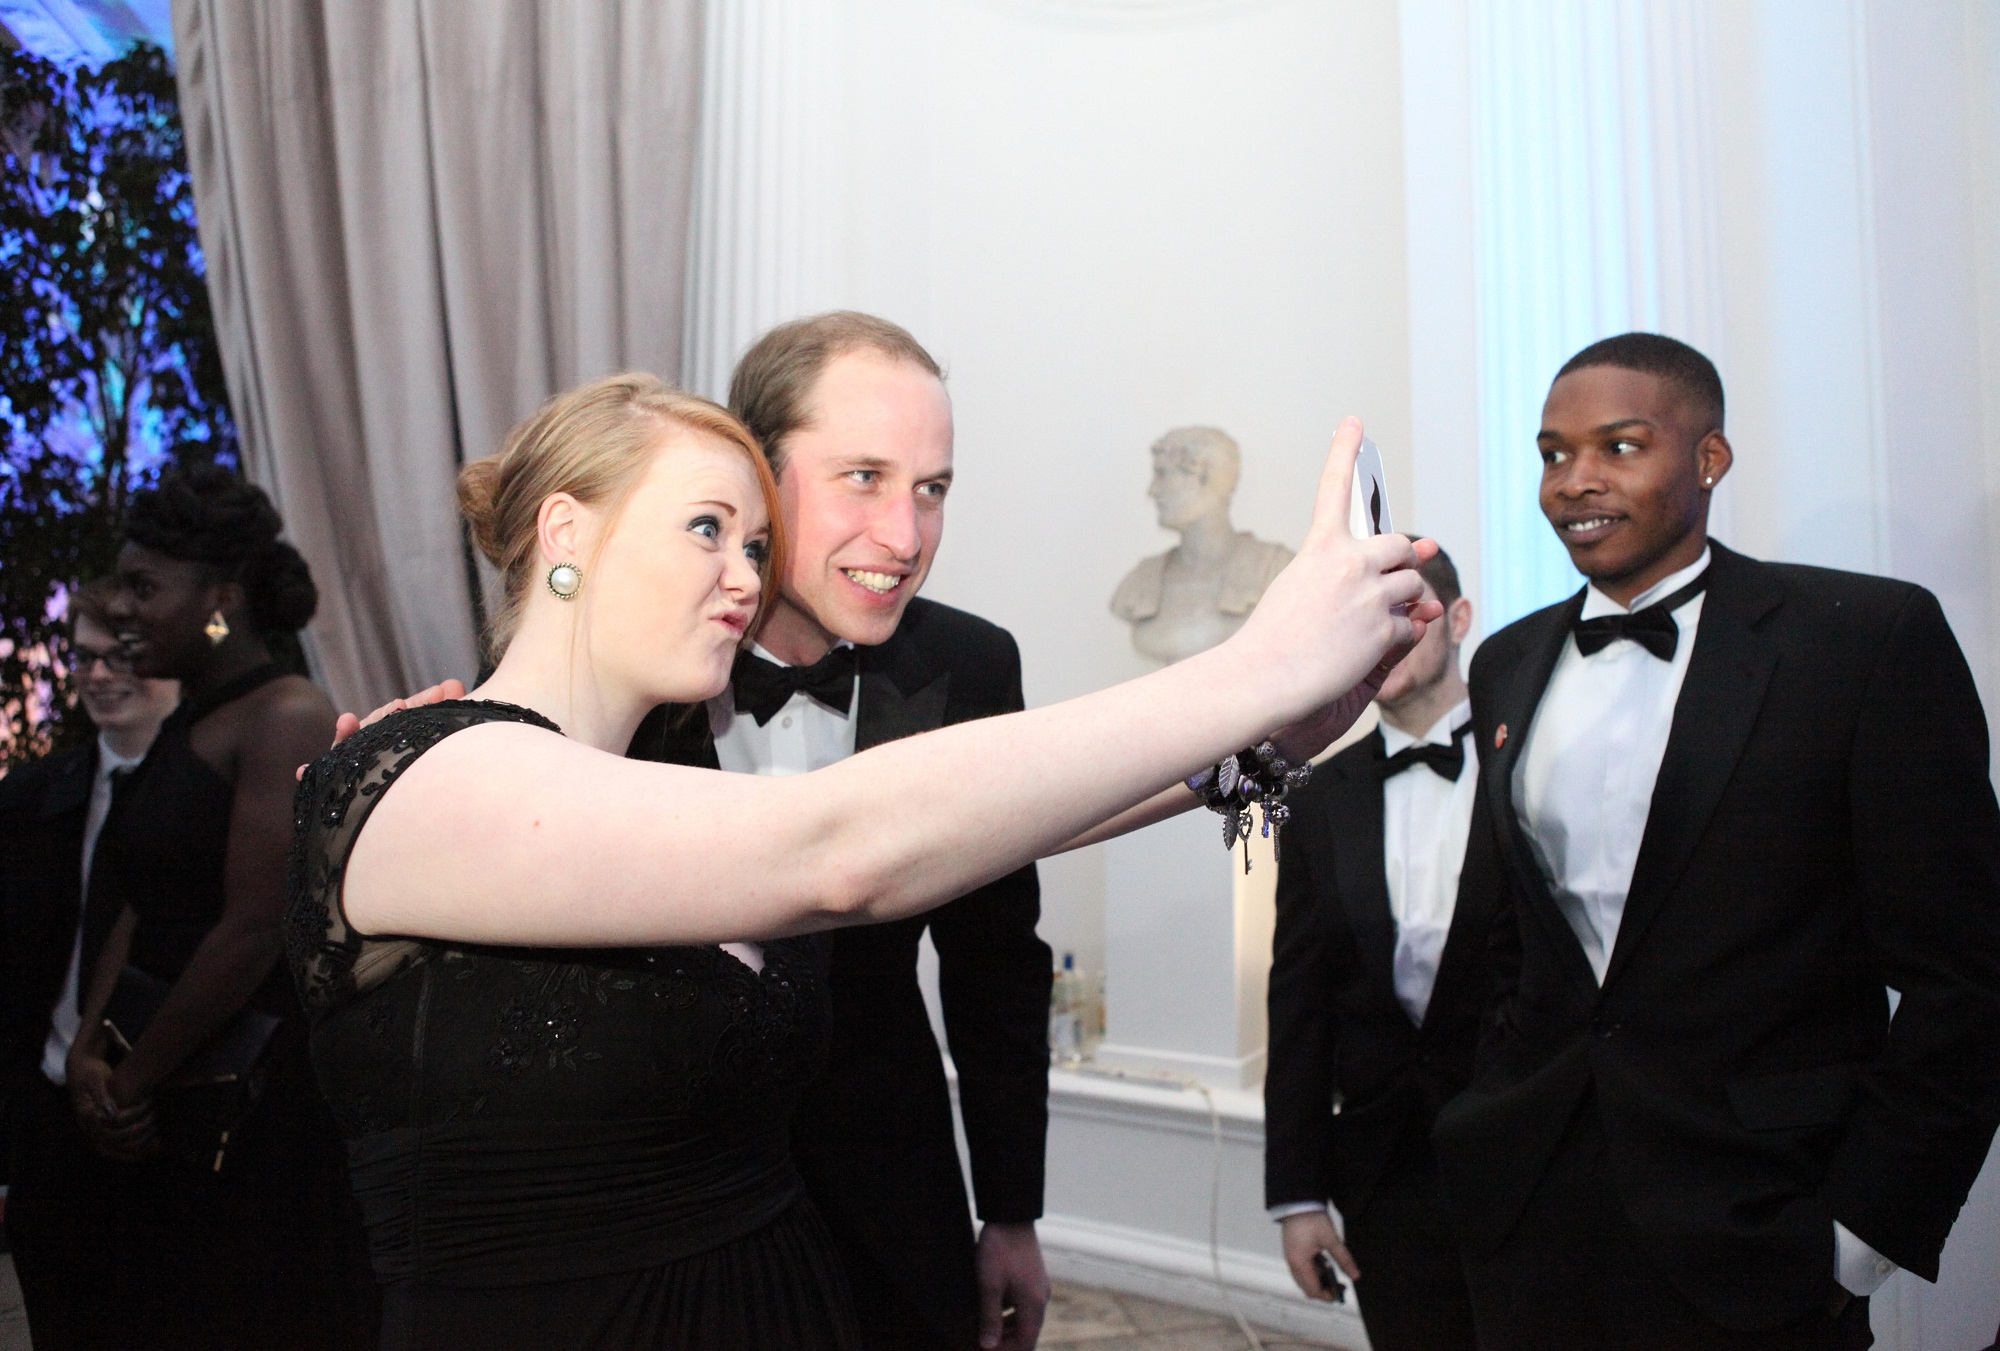 Keighley teenager, Maisie Brook, taking her 'selfie' with Prince William